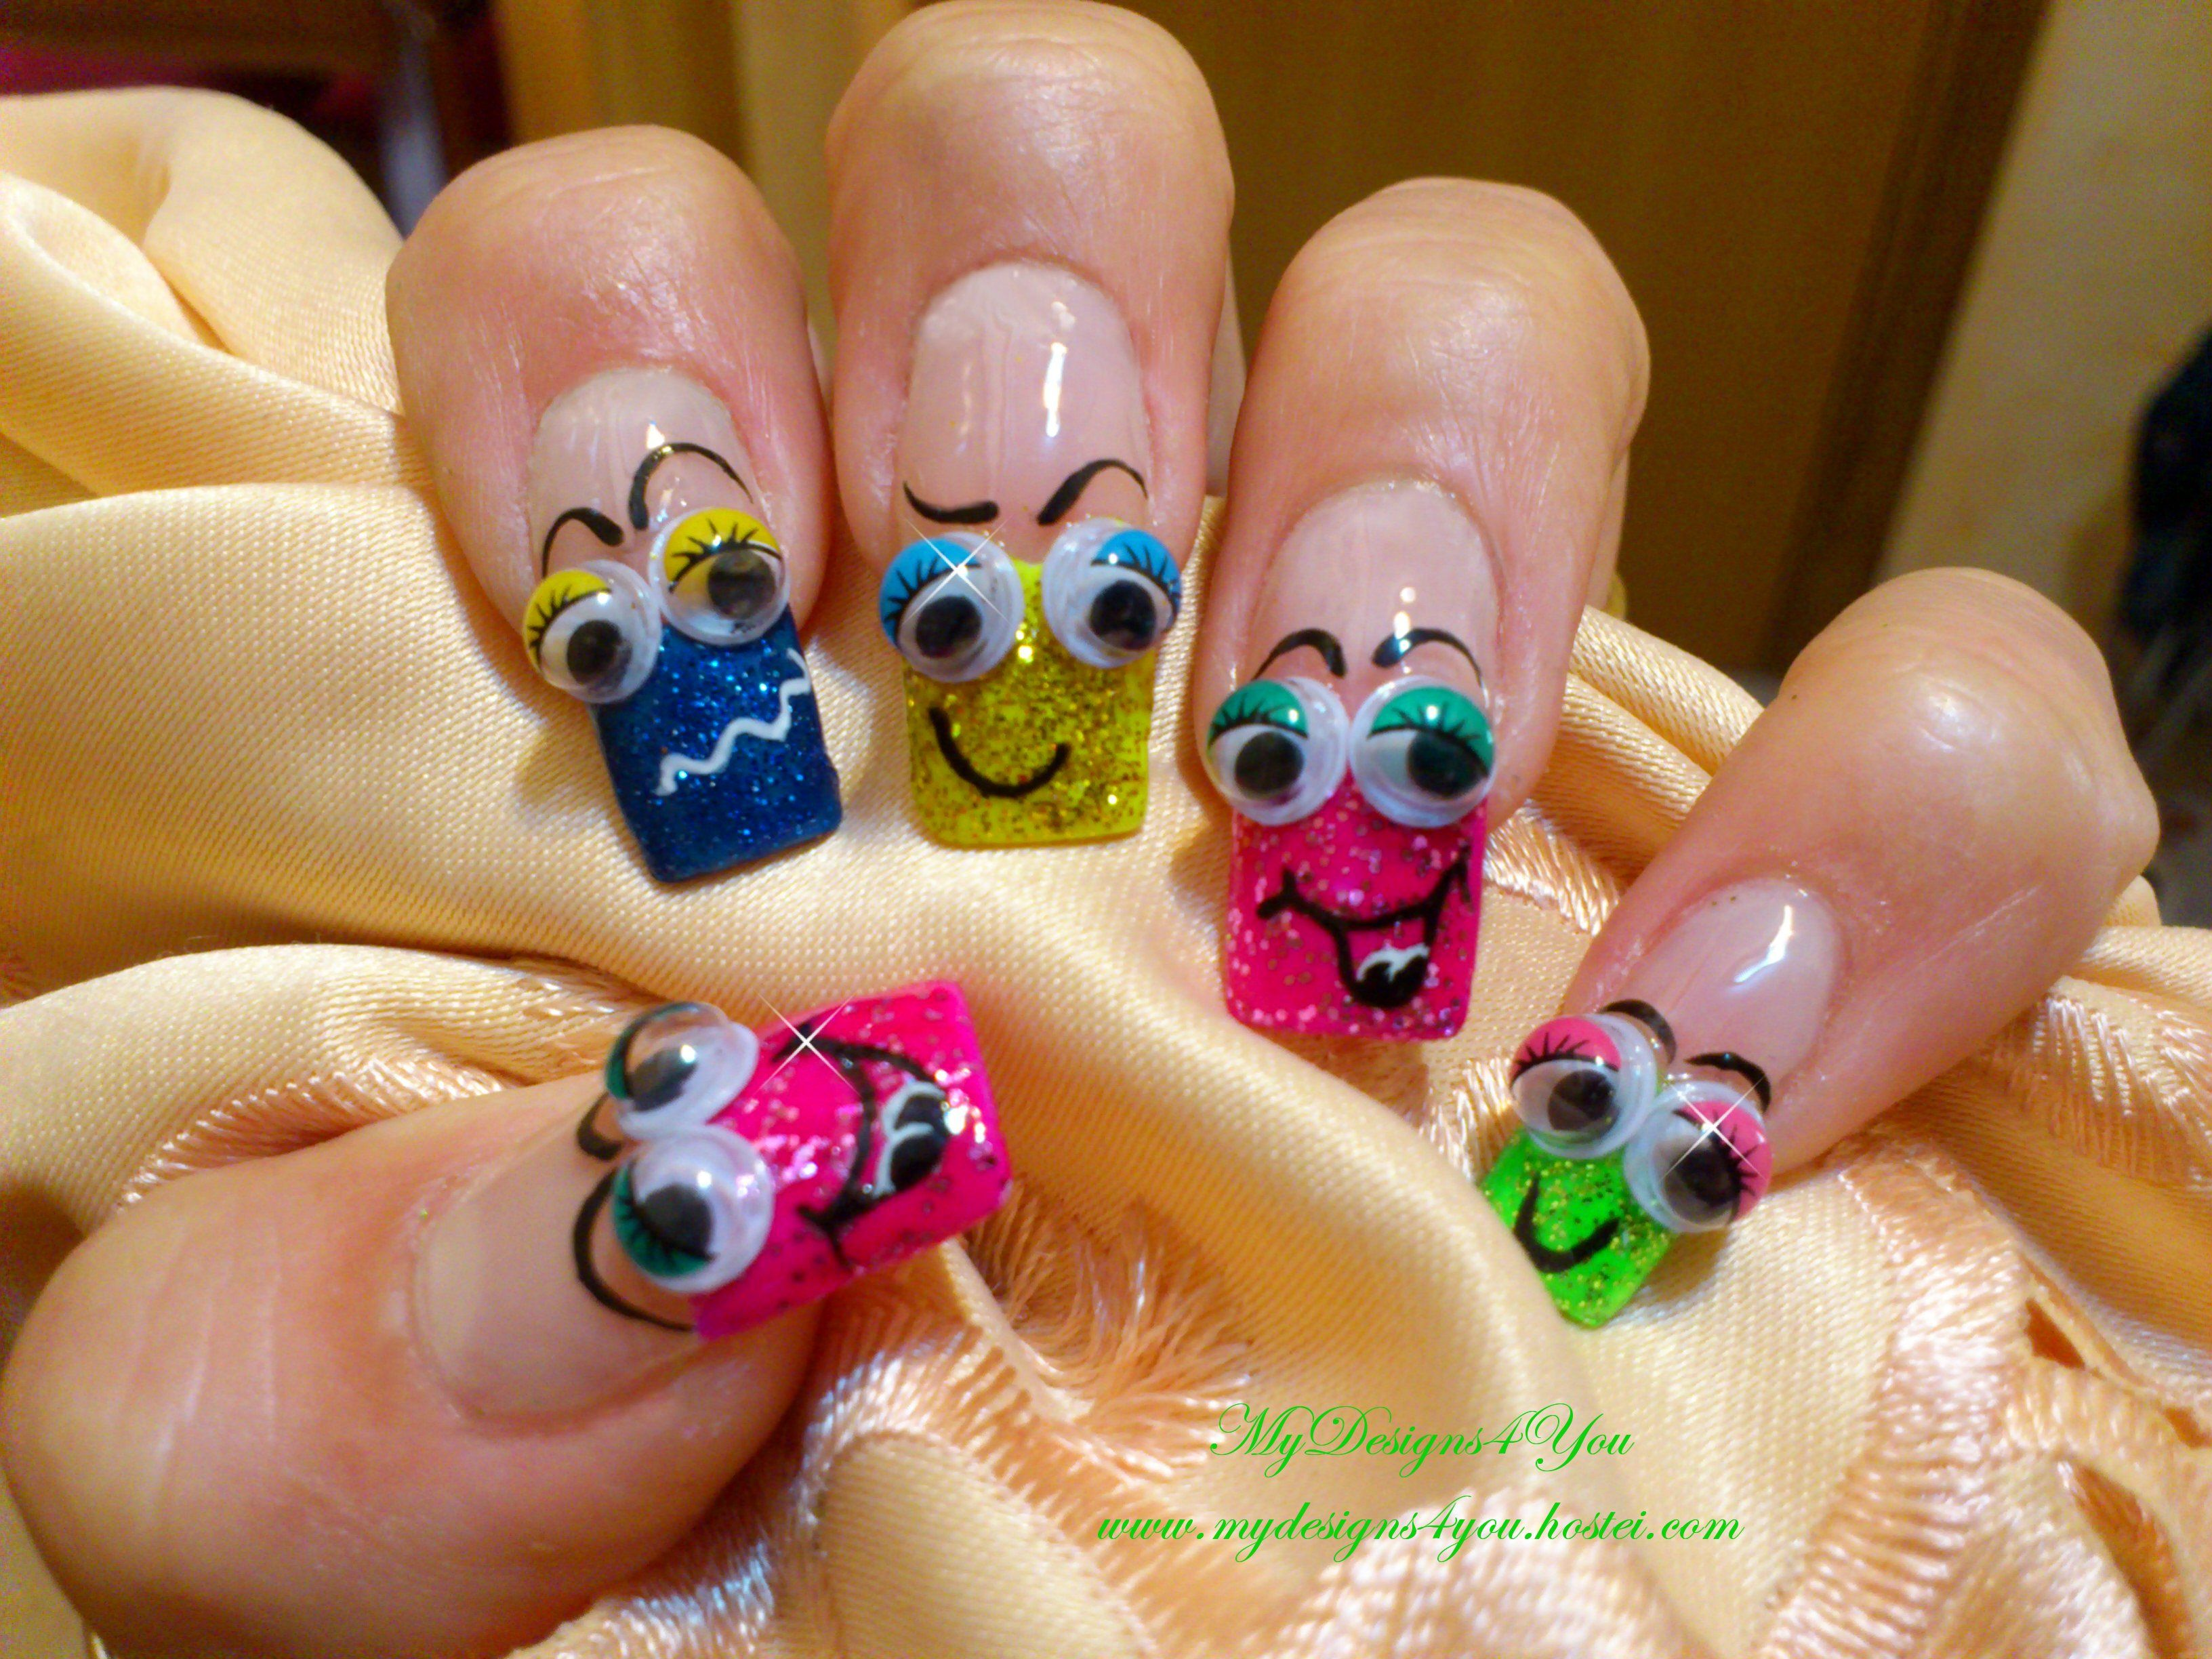 FAVE A FUN APRIL FOOL\'S DAY! 3D Smiley faces nail art design. www ...